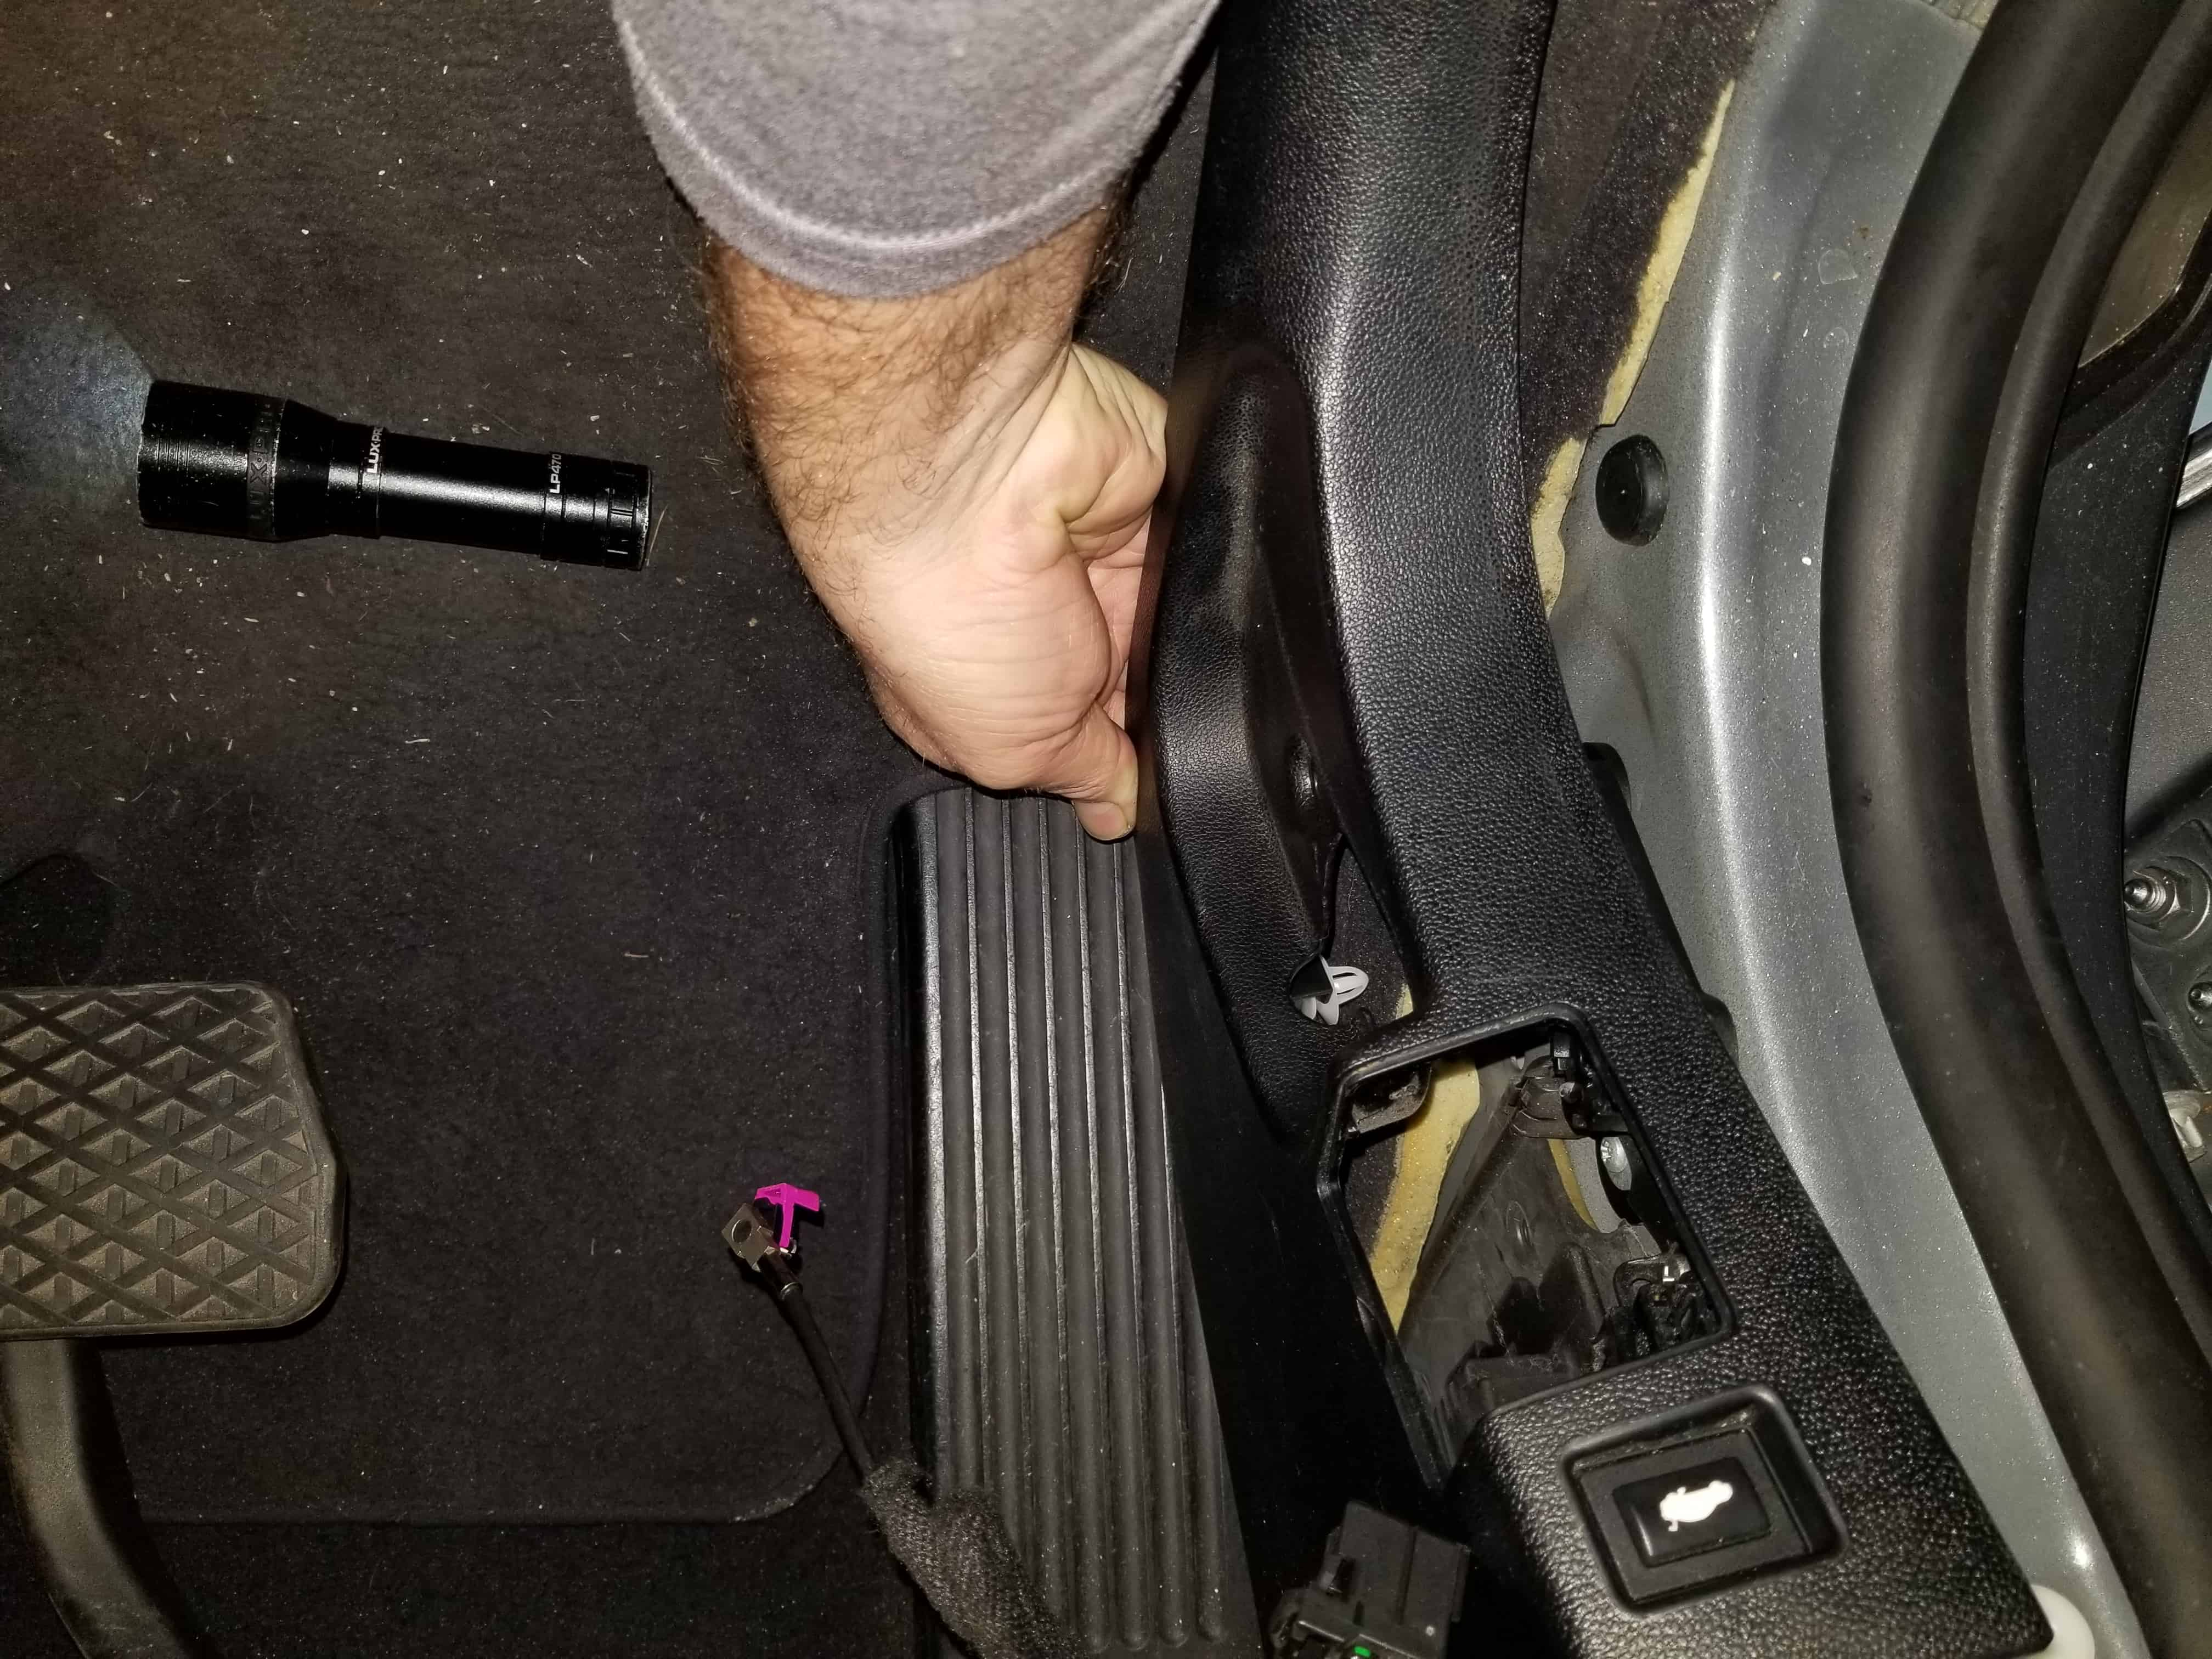 bmw footwell module - Pull the lateral trim loose from body of vehicle.